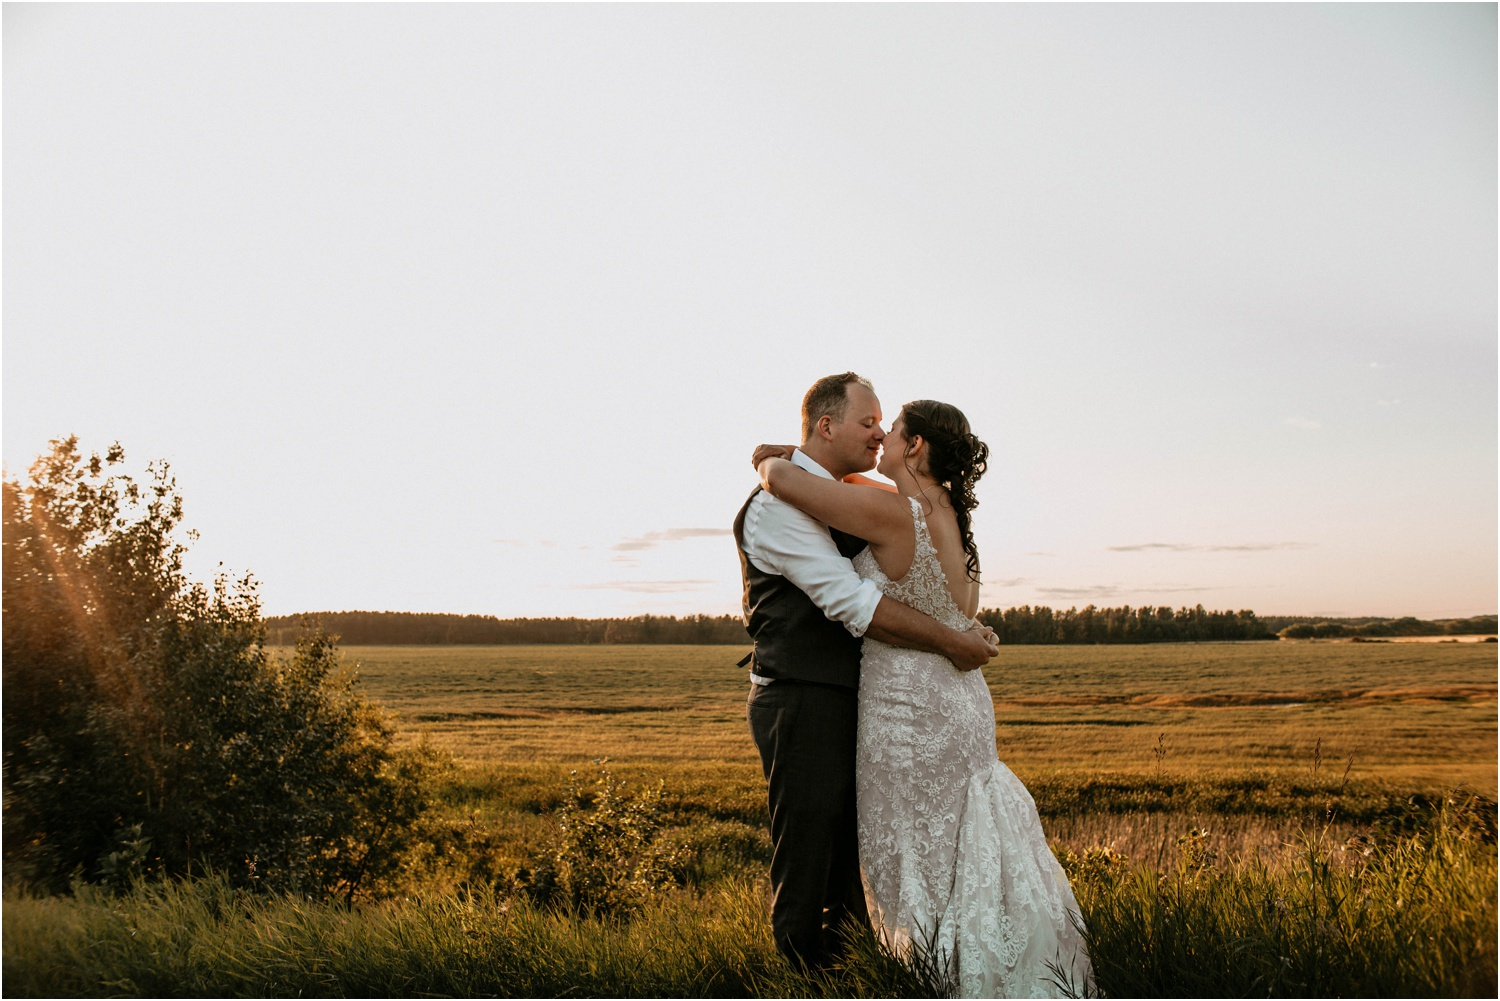 Mabel Hill Farm Kitchen & Marketplace,Mabel Hill Farm Kitchen & Marketplace Wedding,Saskatchewan Wedding Photographer,Saskatoon Wedding Photographer,